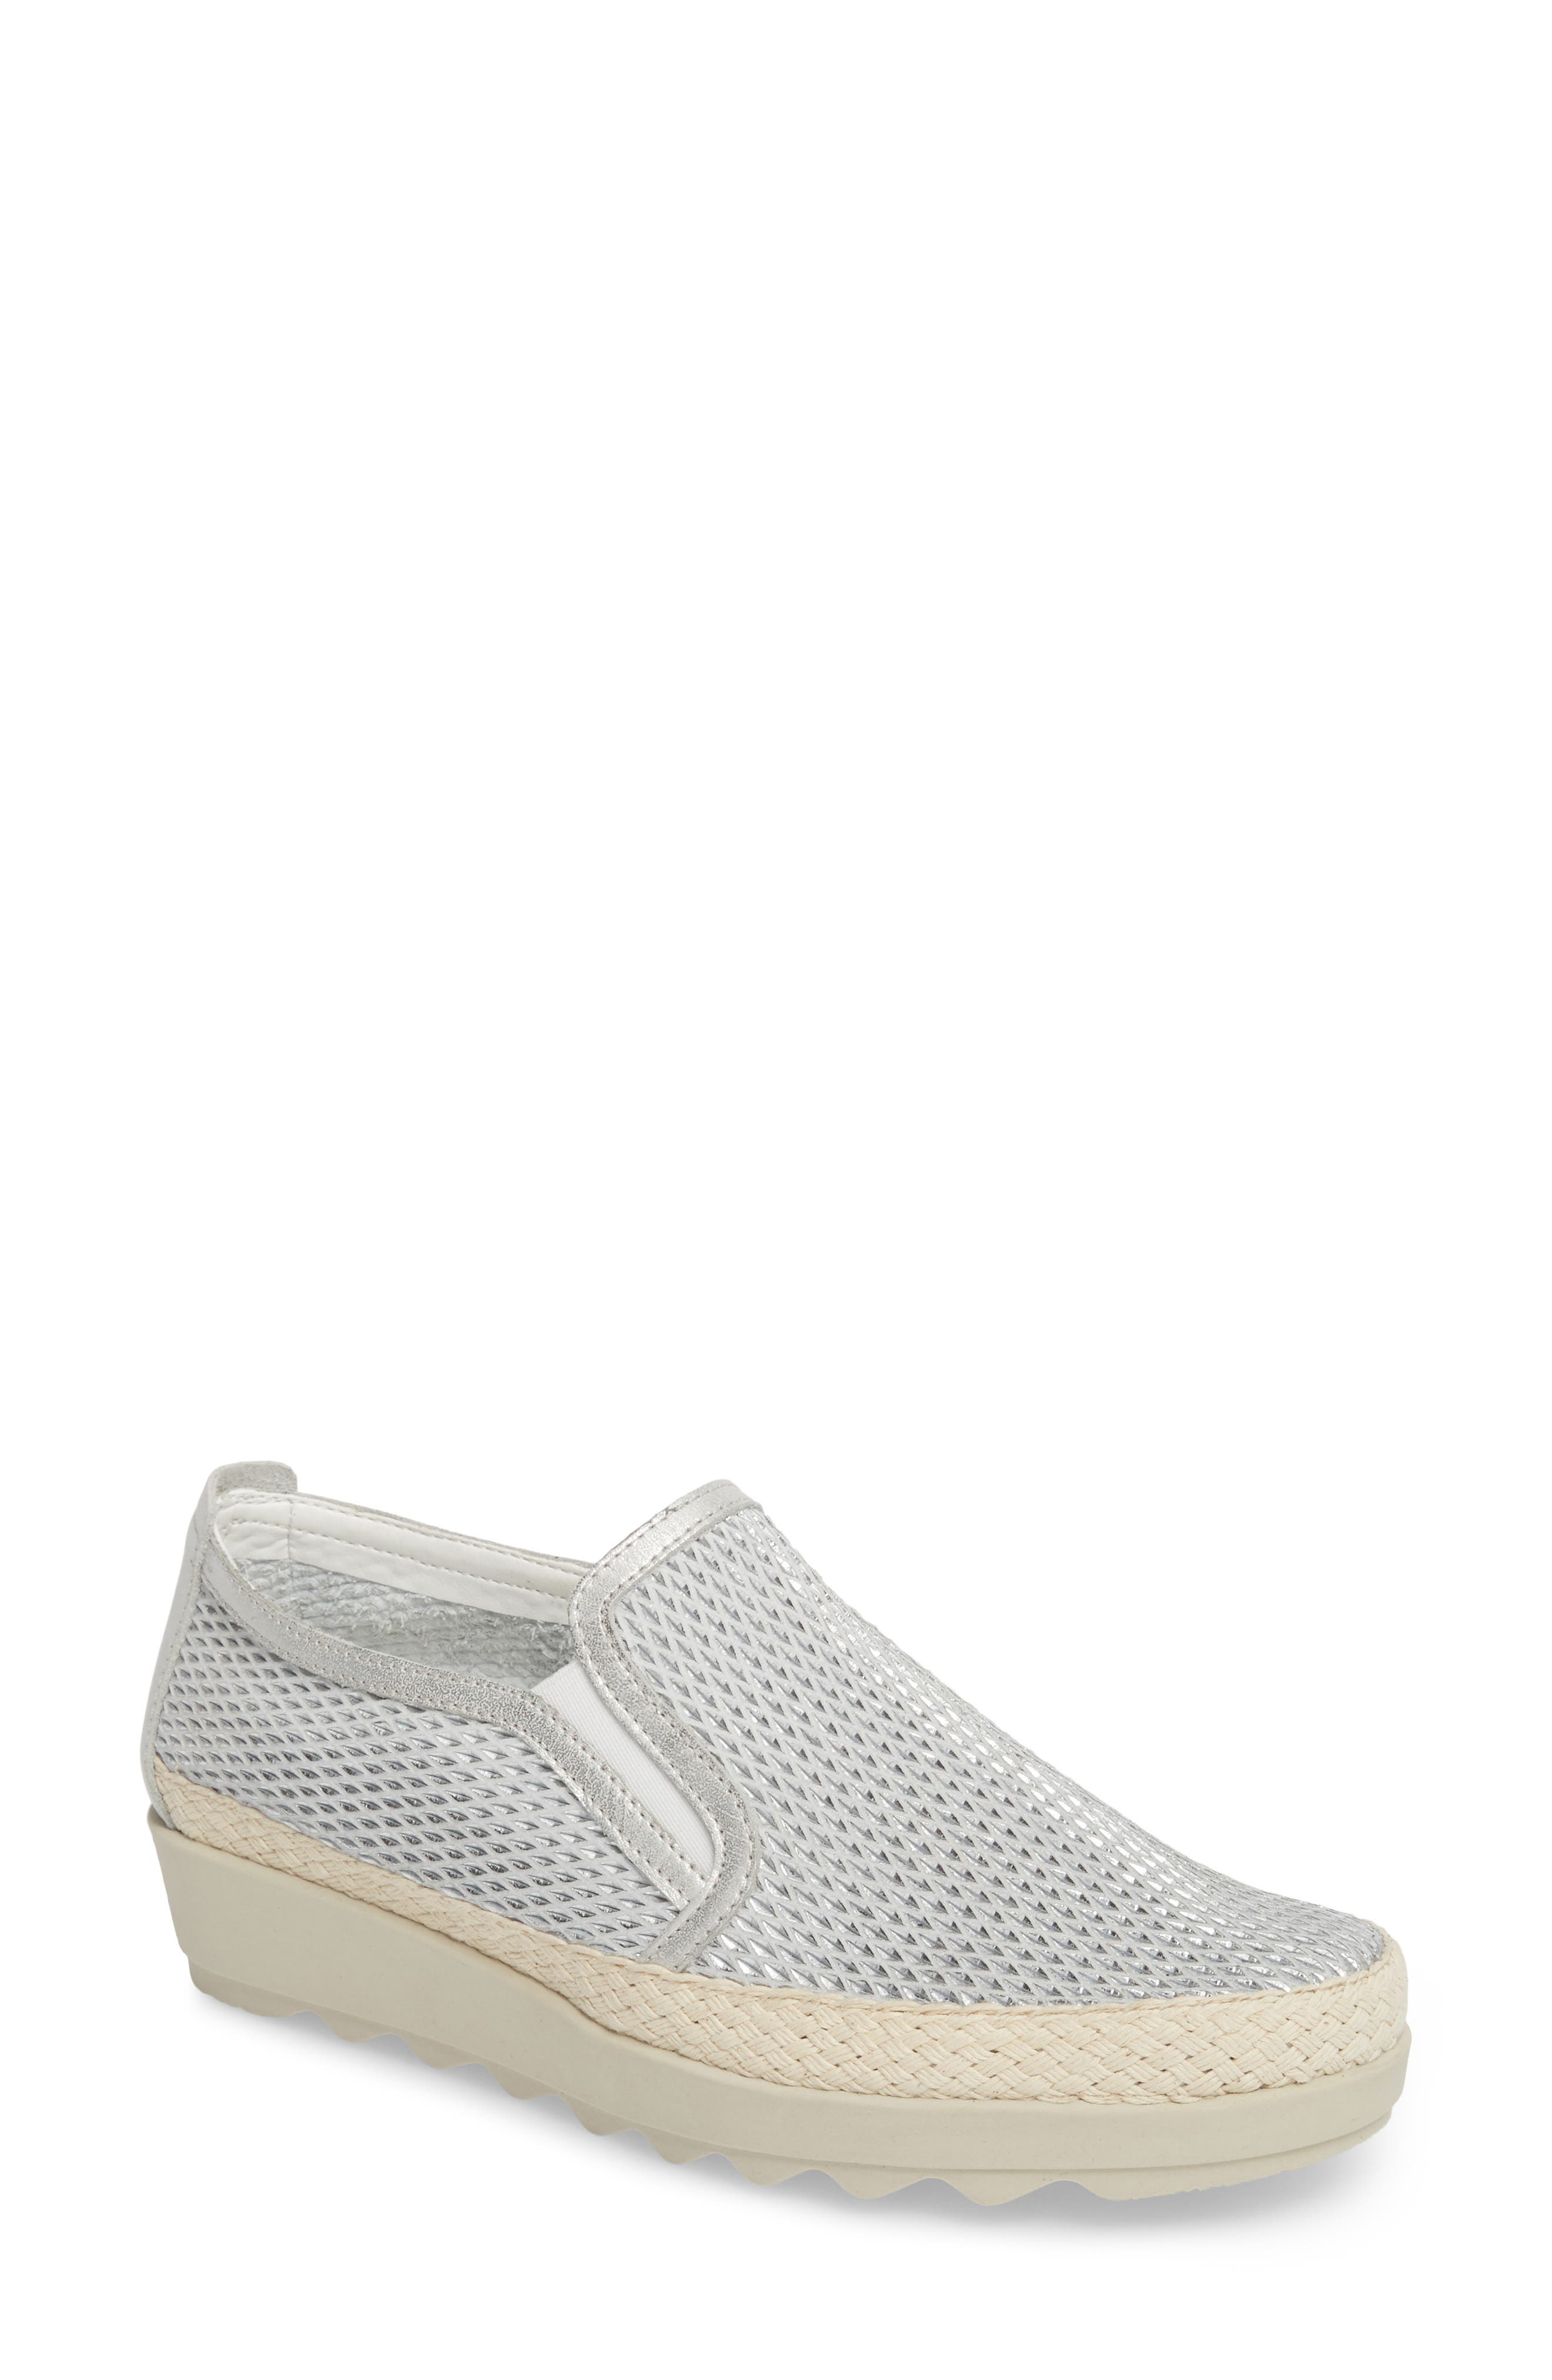 Call Me Perforated Slip-On Sneaker,                         Main,                         color, White/ Silver Leather